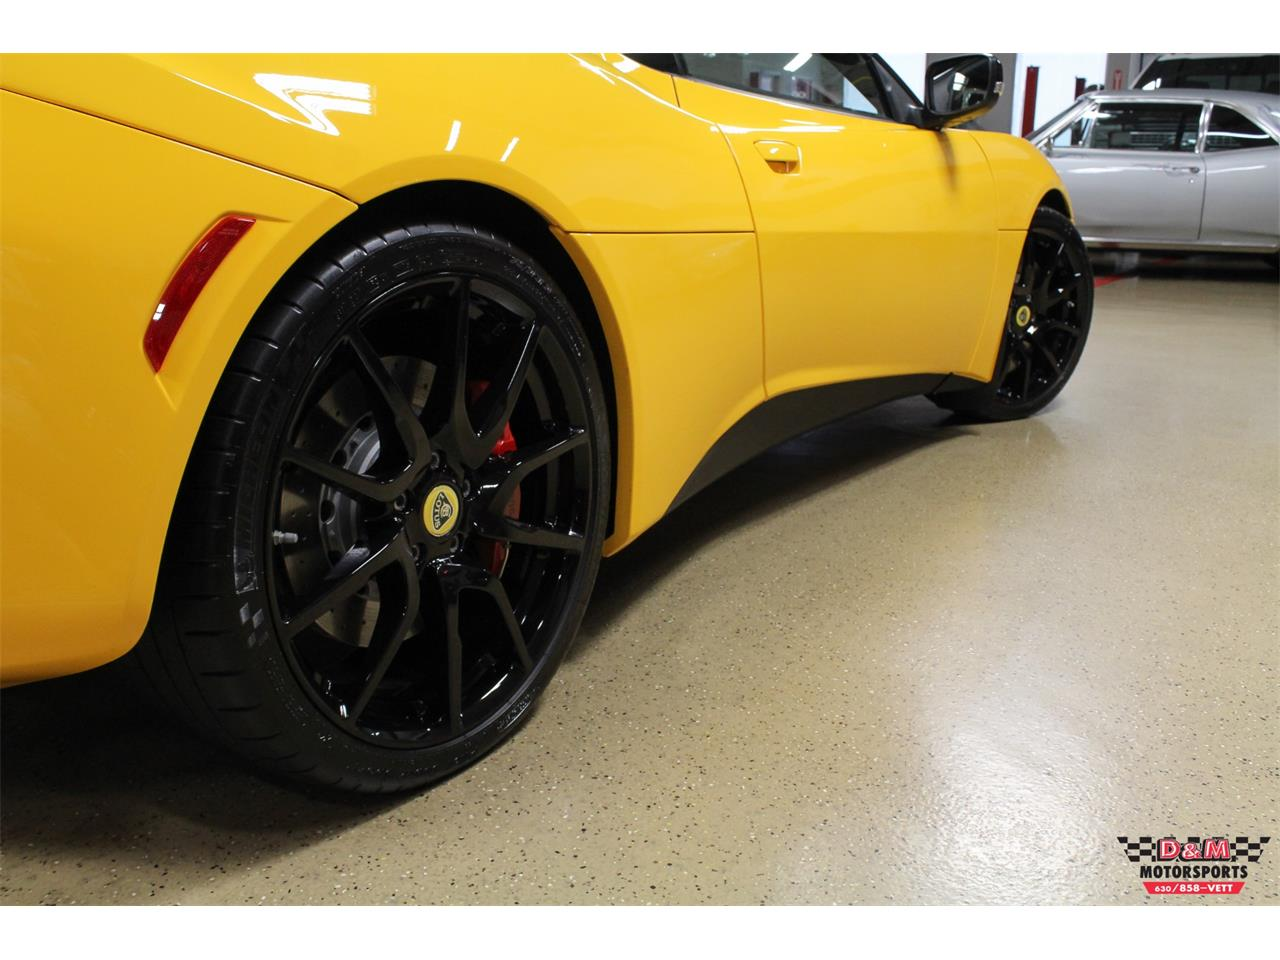 Large Picture of '17 Lotus Evora located in Illinois - $76,995.00 Offered by D & M Motorsports - OY1K